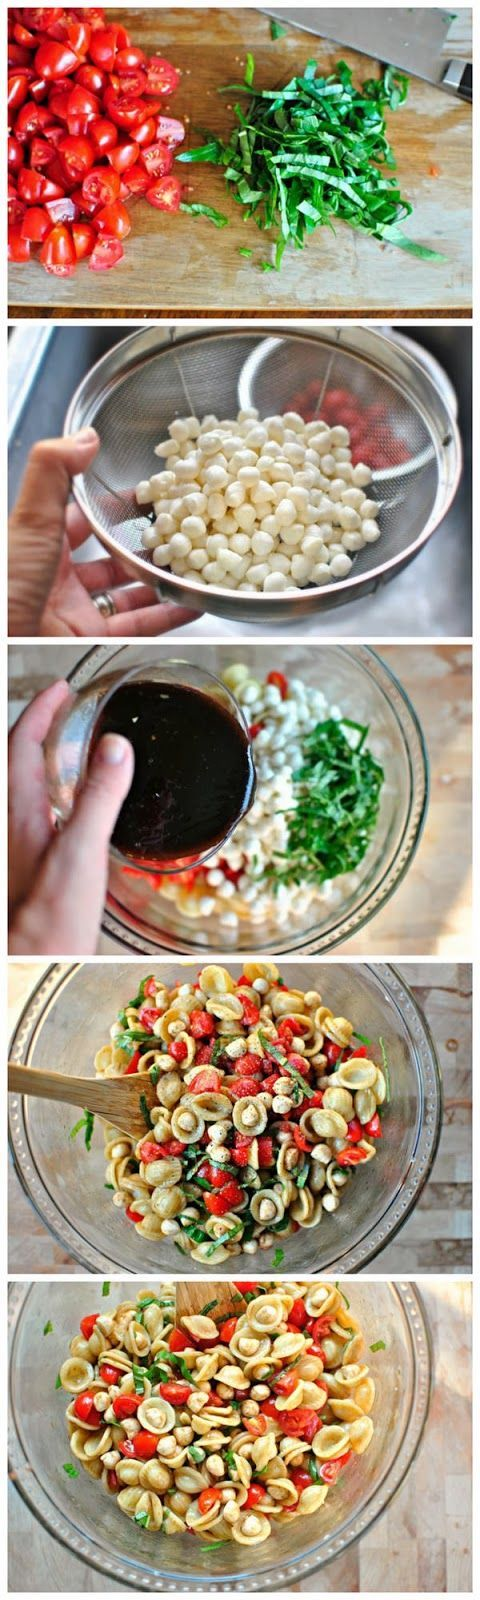 Balsamic Garlic Honey | Caprese Pasta Salad / Use Delightful Palate as the dressing | www.delightfulpalate.net